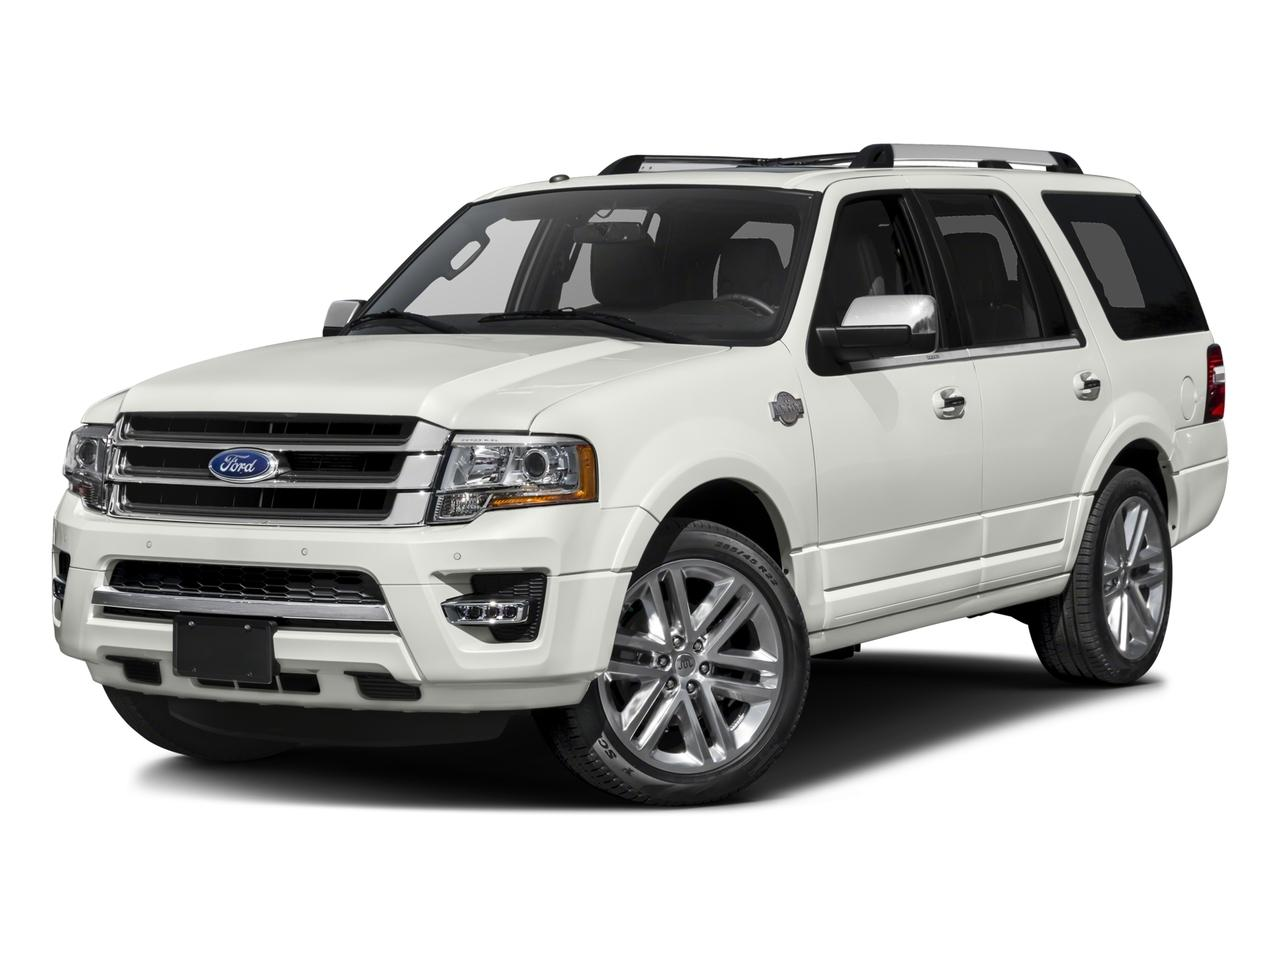 2016 Ford Expedition Vehicle Photo in Buford, GA 30519